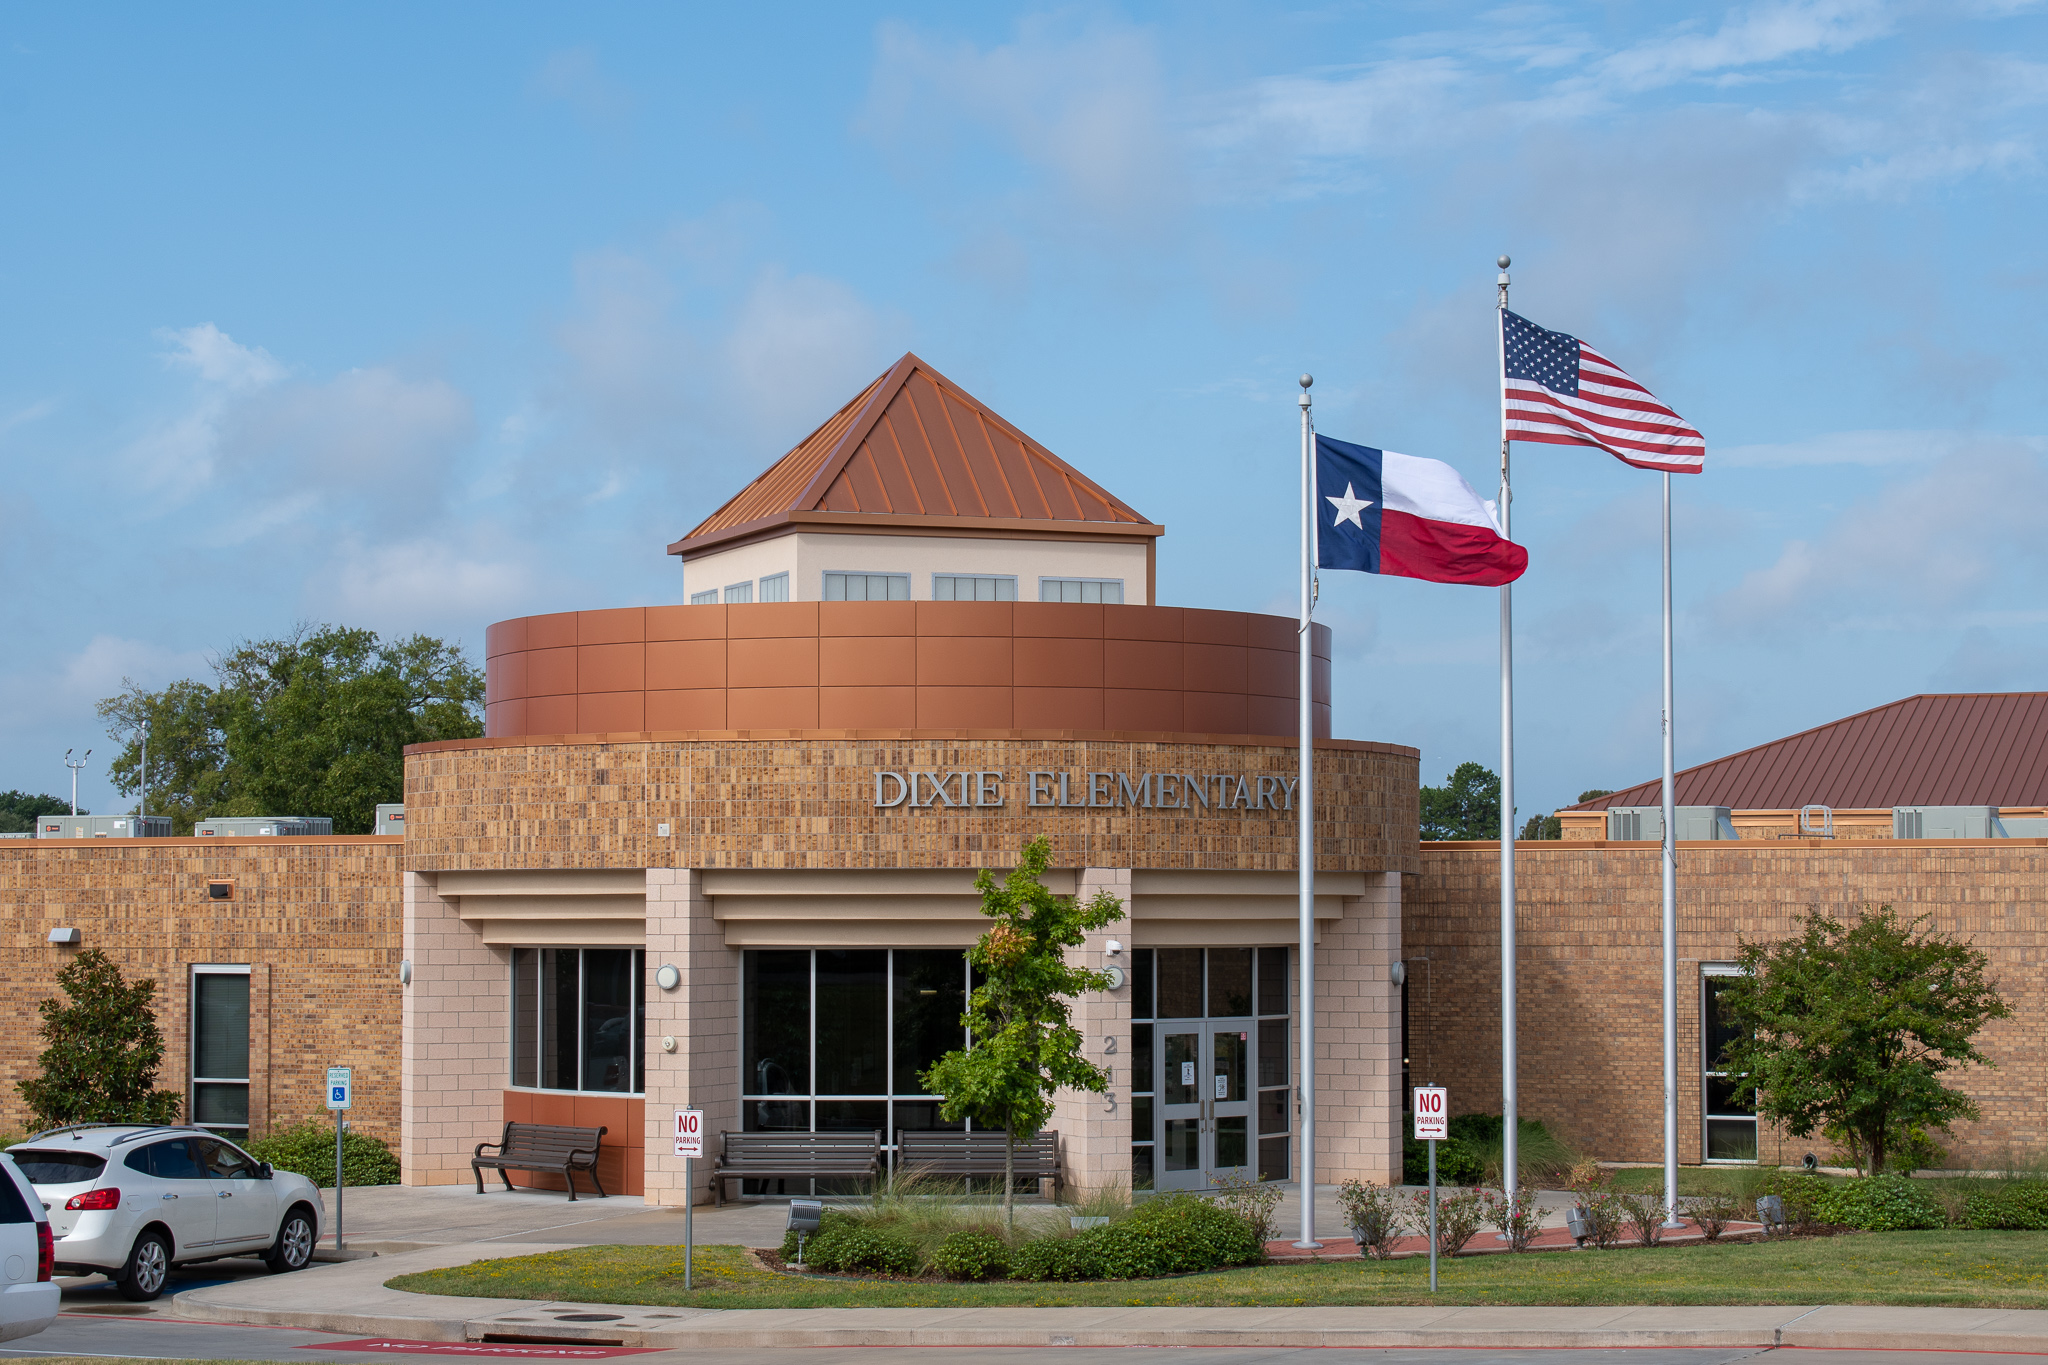 Dixie Elementary front entrance